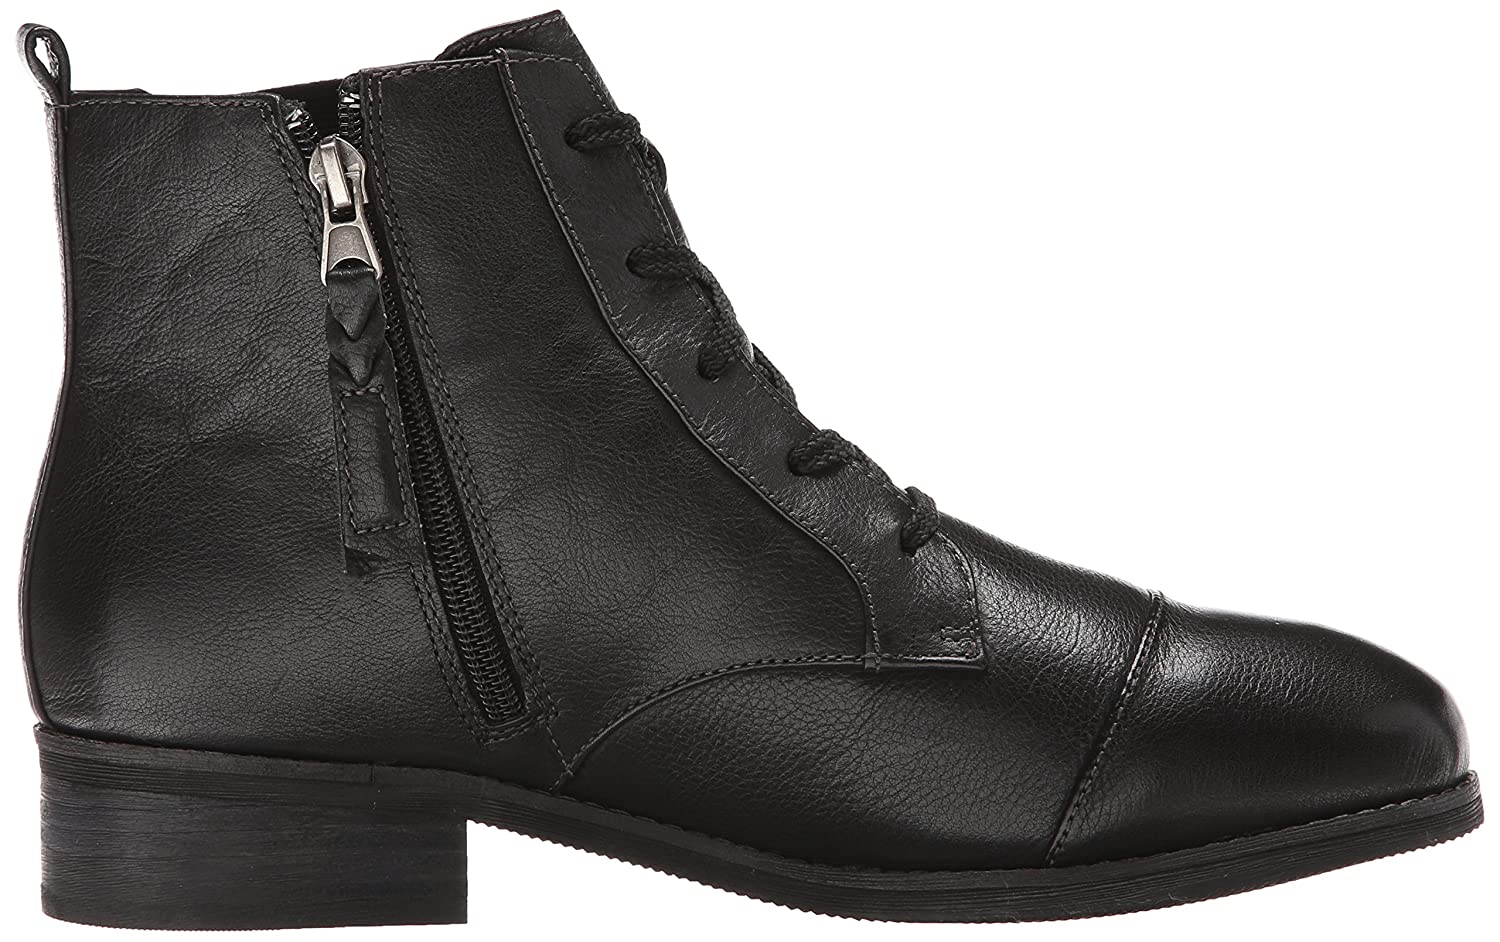 SoftWalk Women's Miller Boot B00S0391OU 10 B(M) US|Black